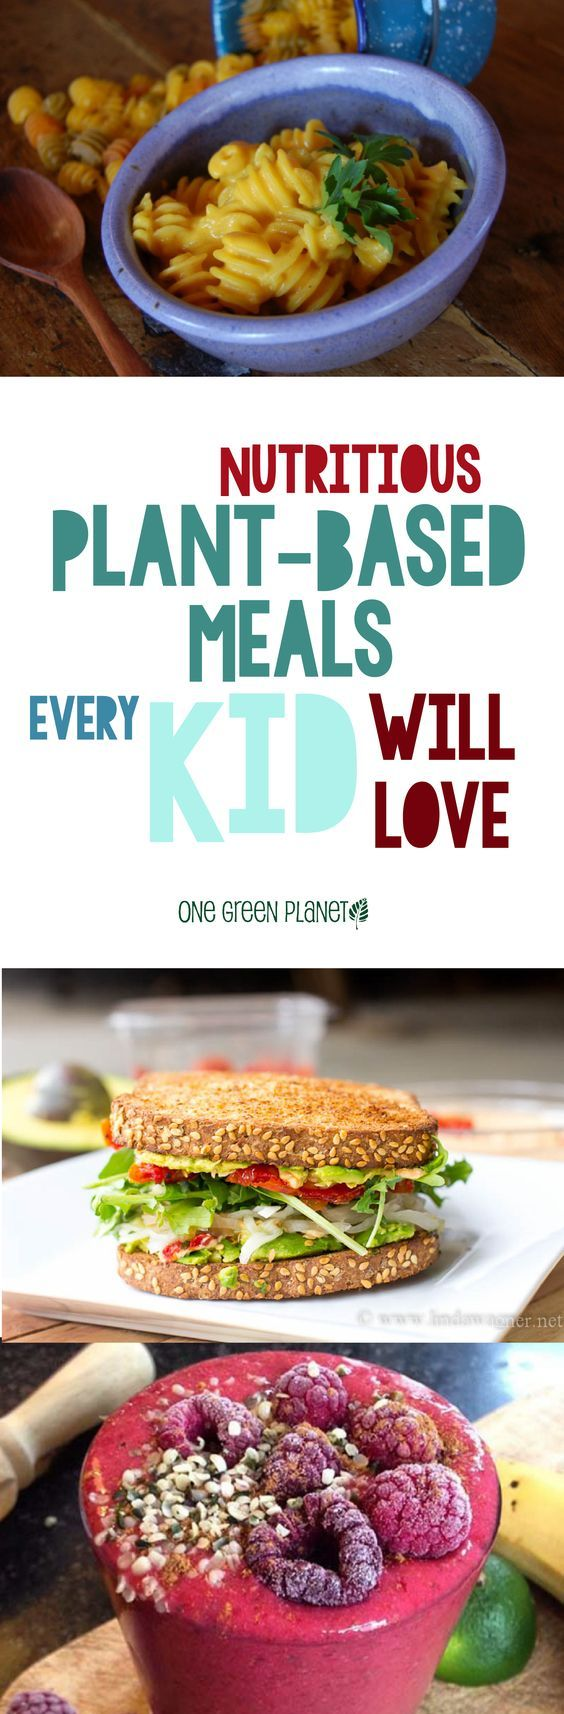 Nutritious plant based meals every kid will love: